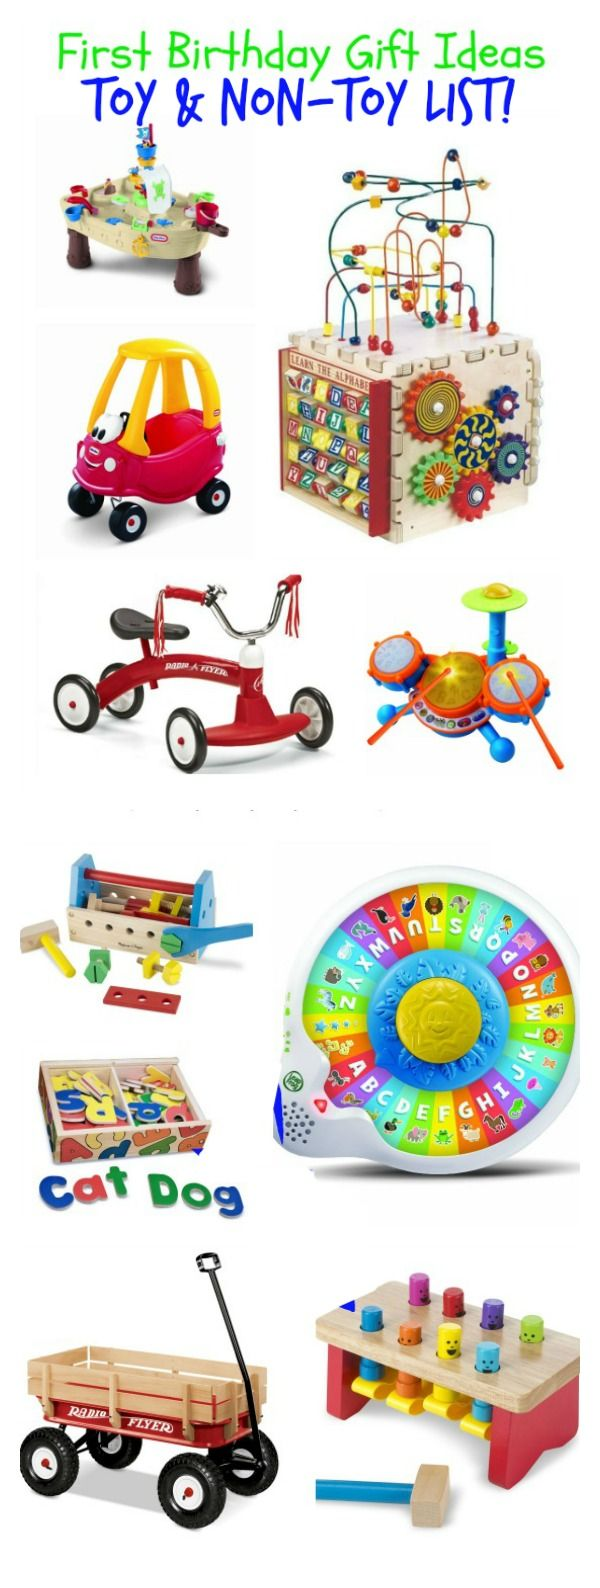 Toys For A 1st Birthday : St birthday gift idea list has toy and non ideas